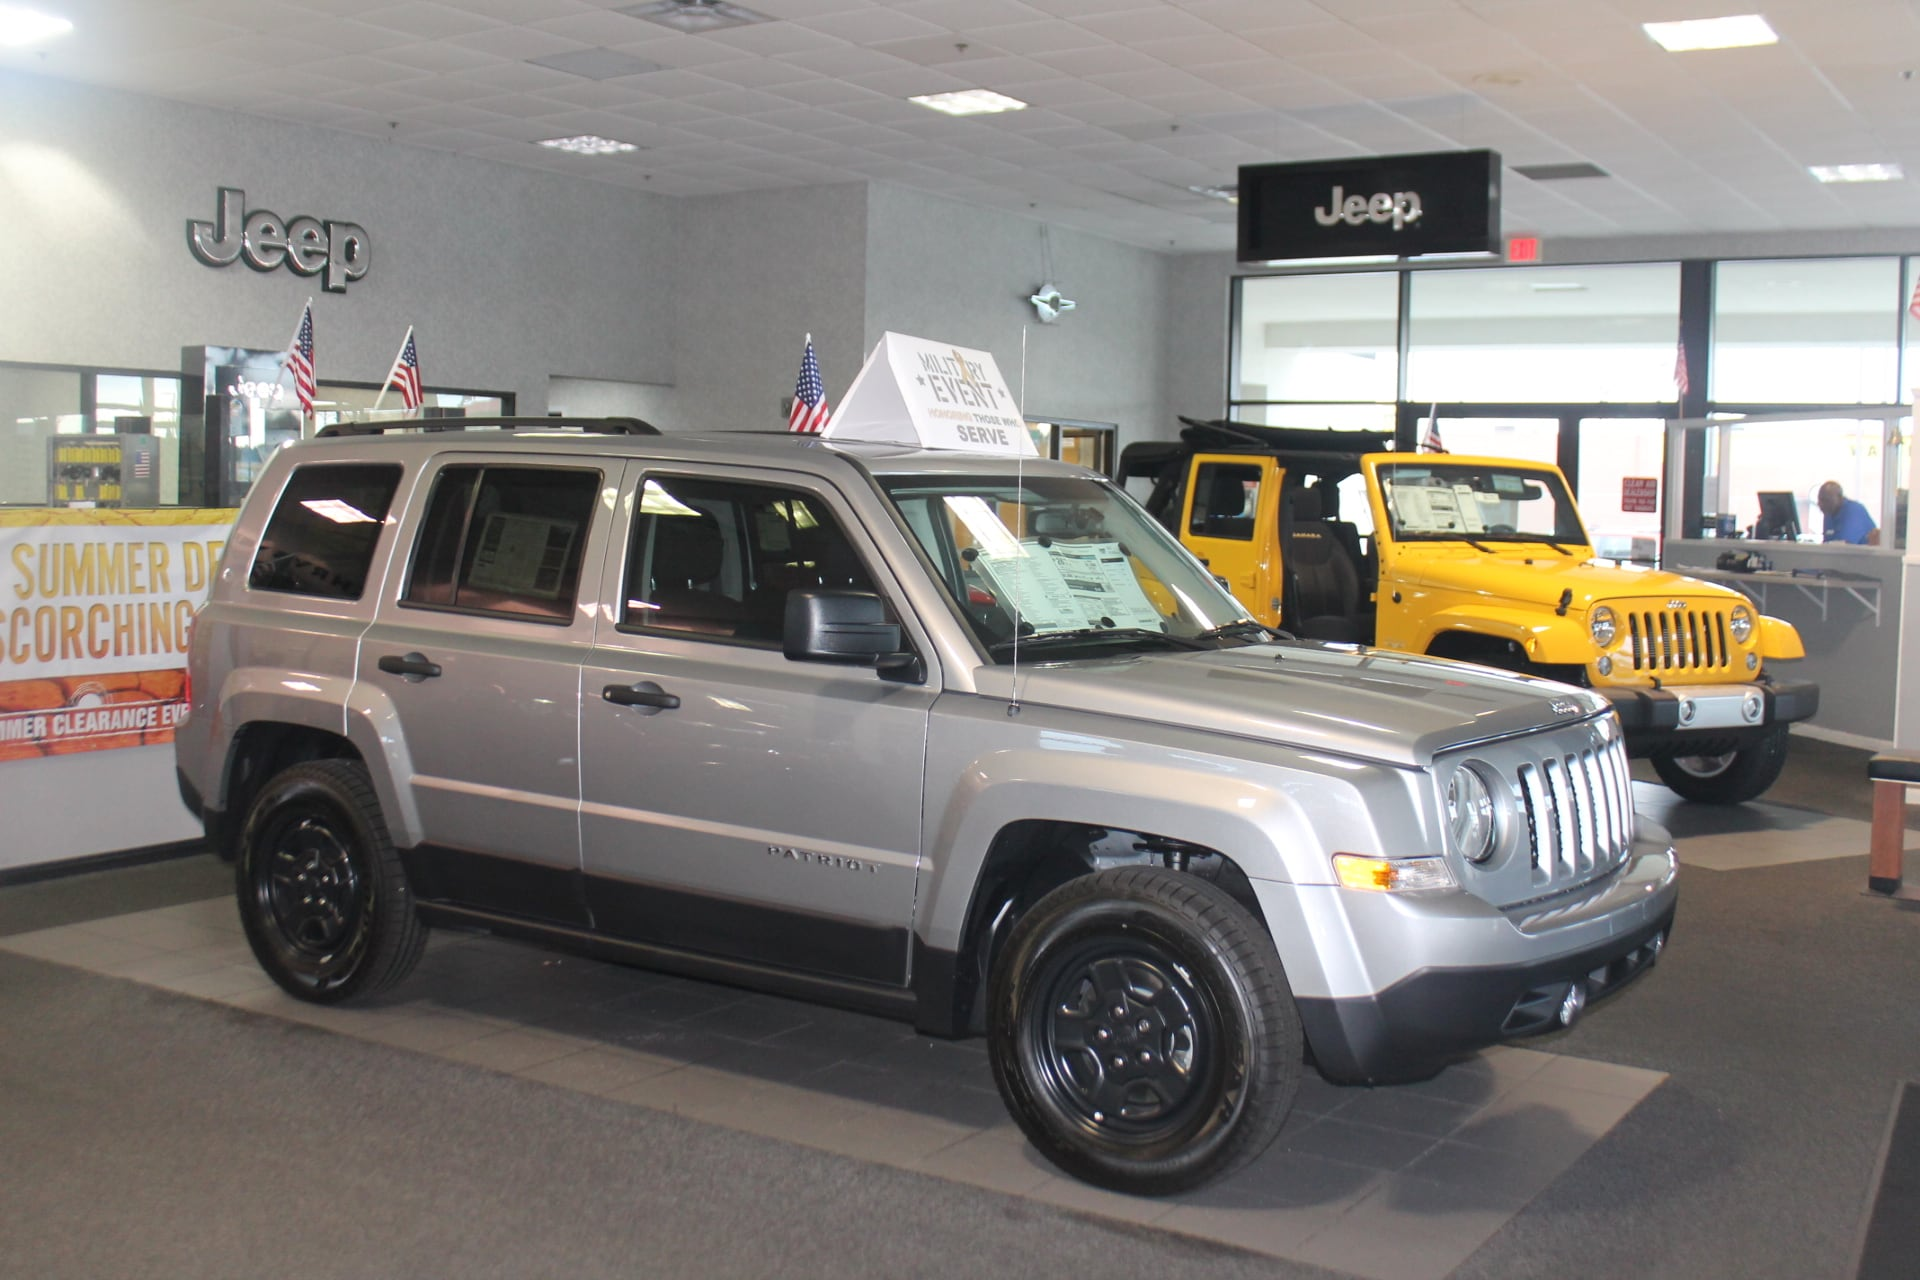 country 300 200 showroom in fayetteville hendrick chrysler jeep. Cars Review. Best American Auto & Cars Review